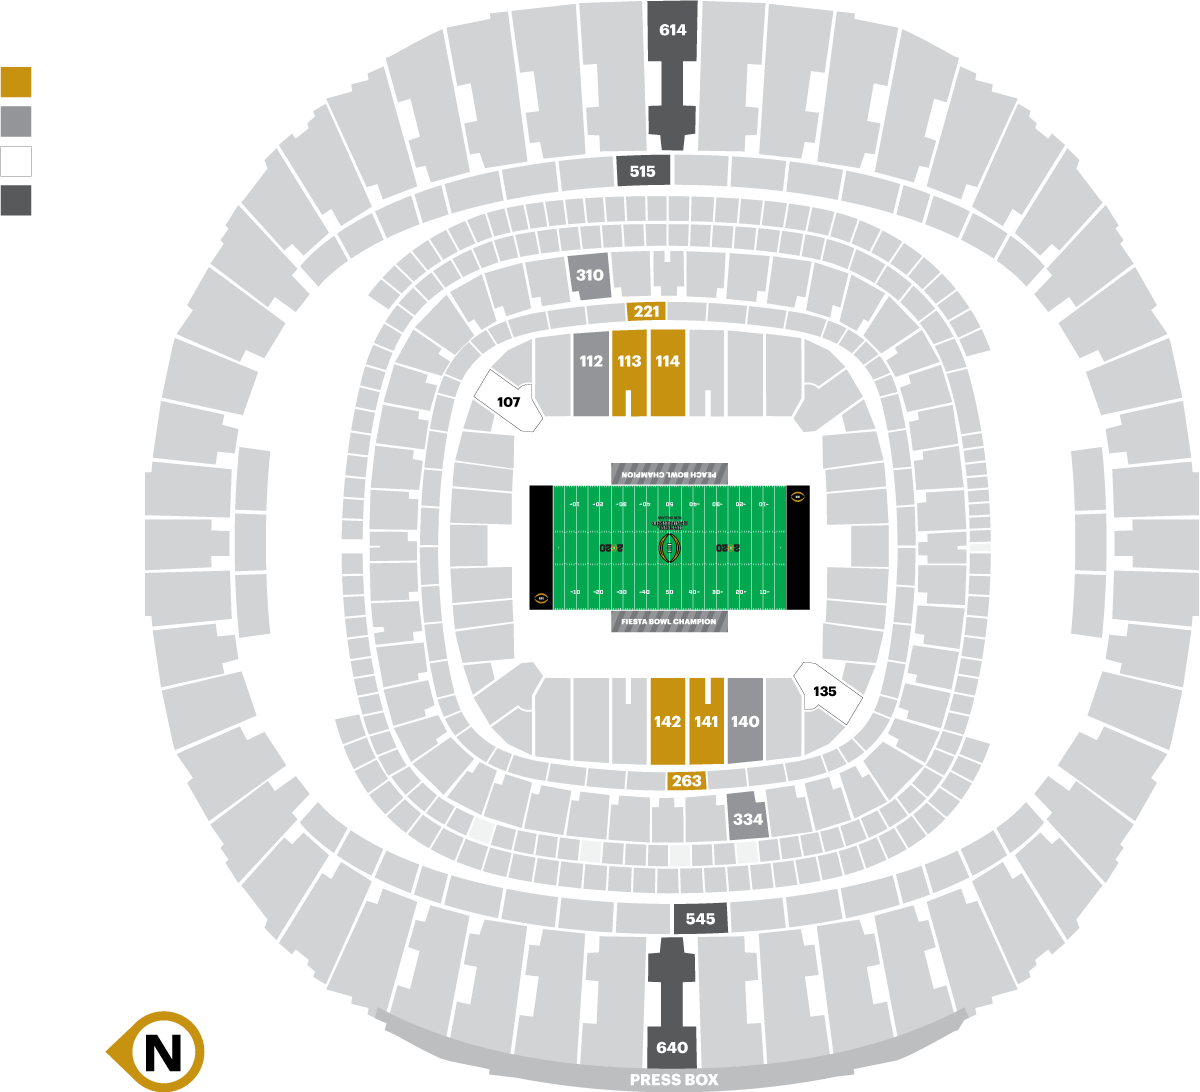 College football championship 2020 seating chart